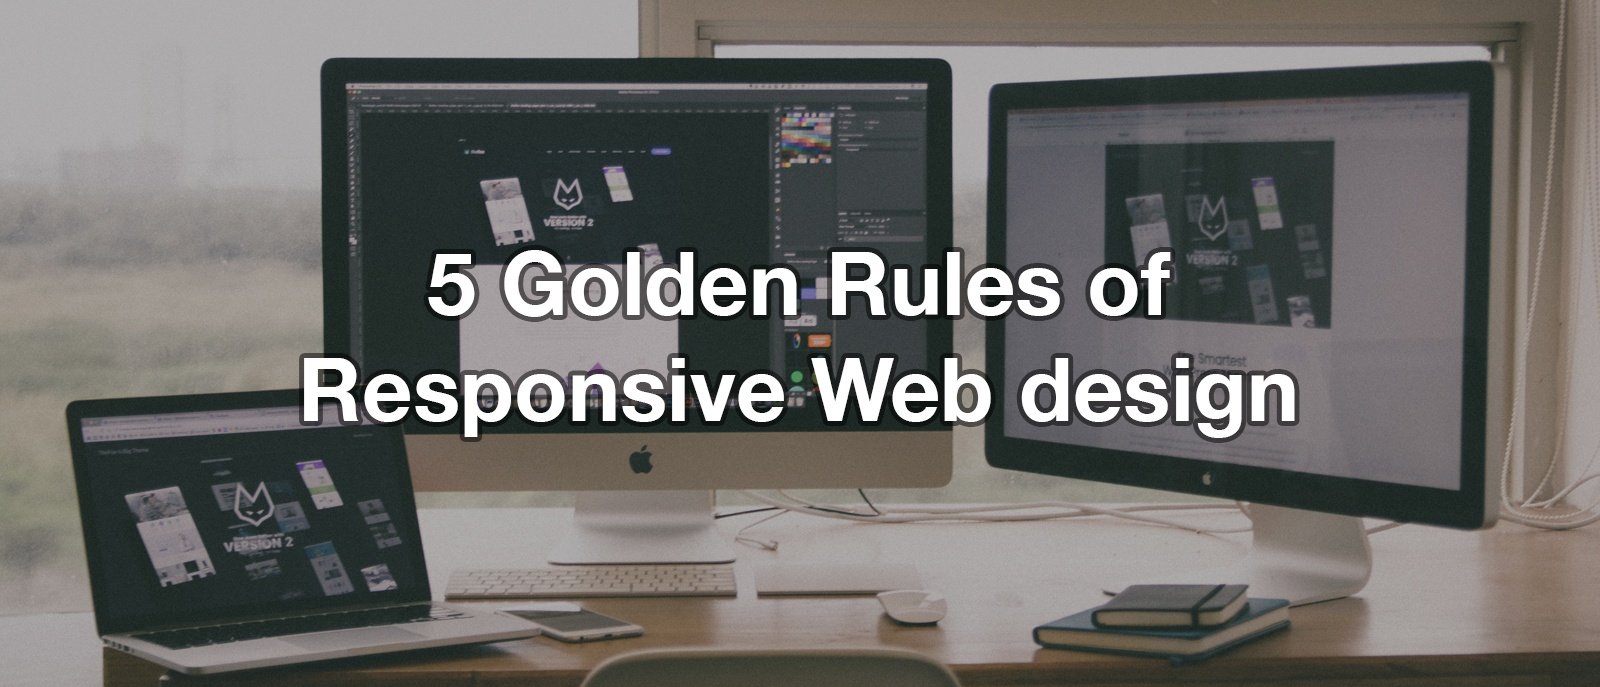 5 golden rules of responsive web design